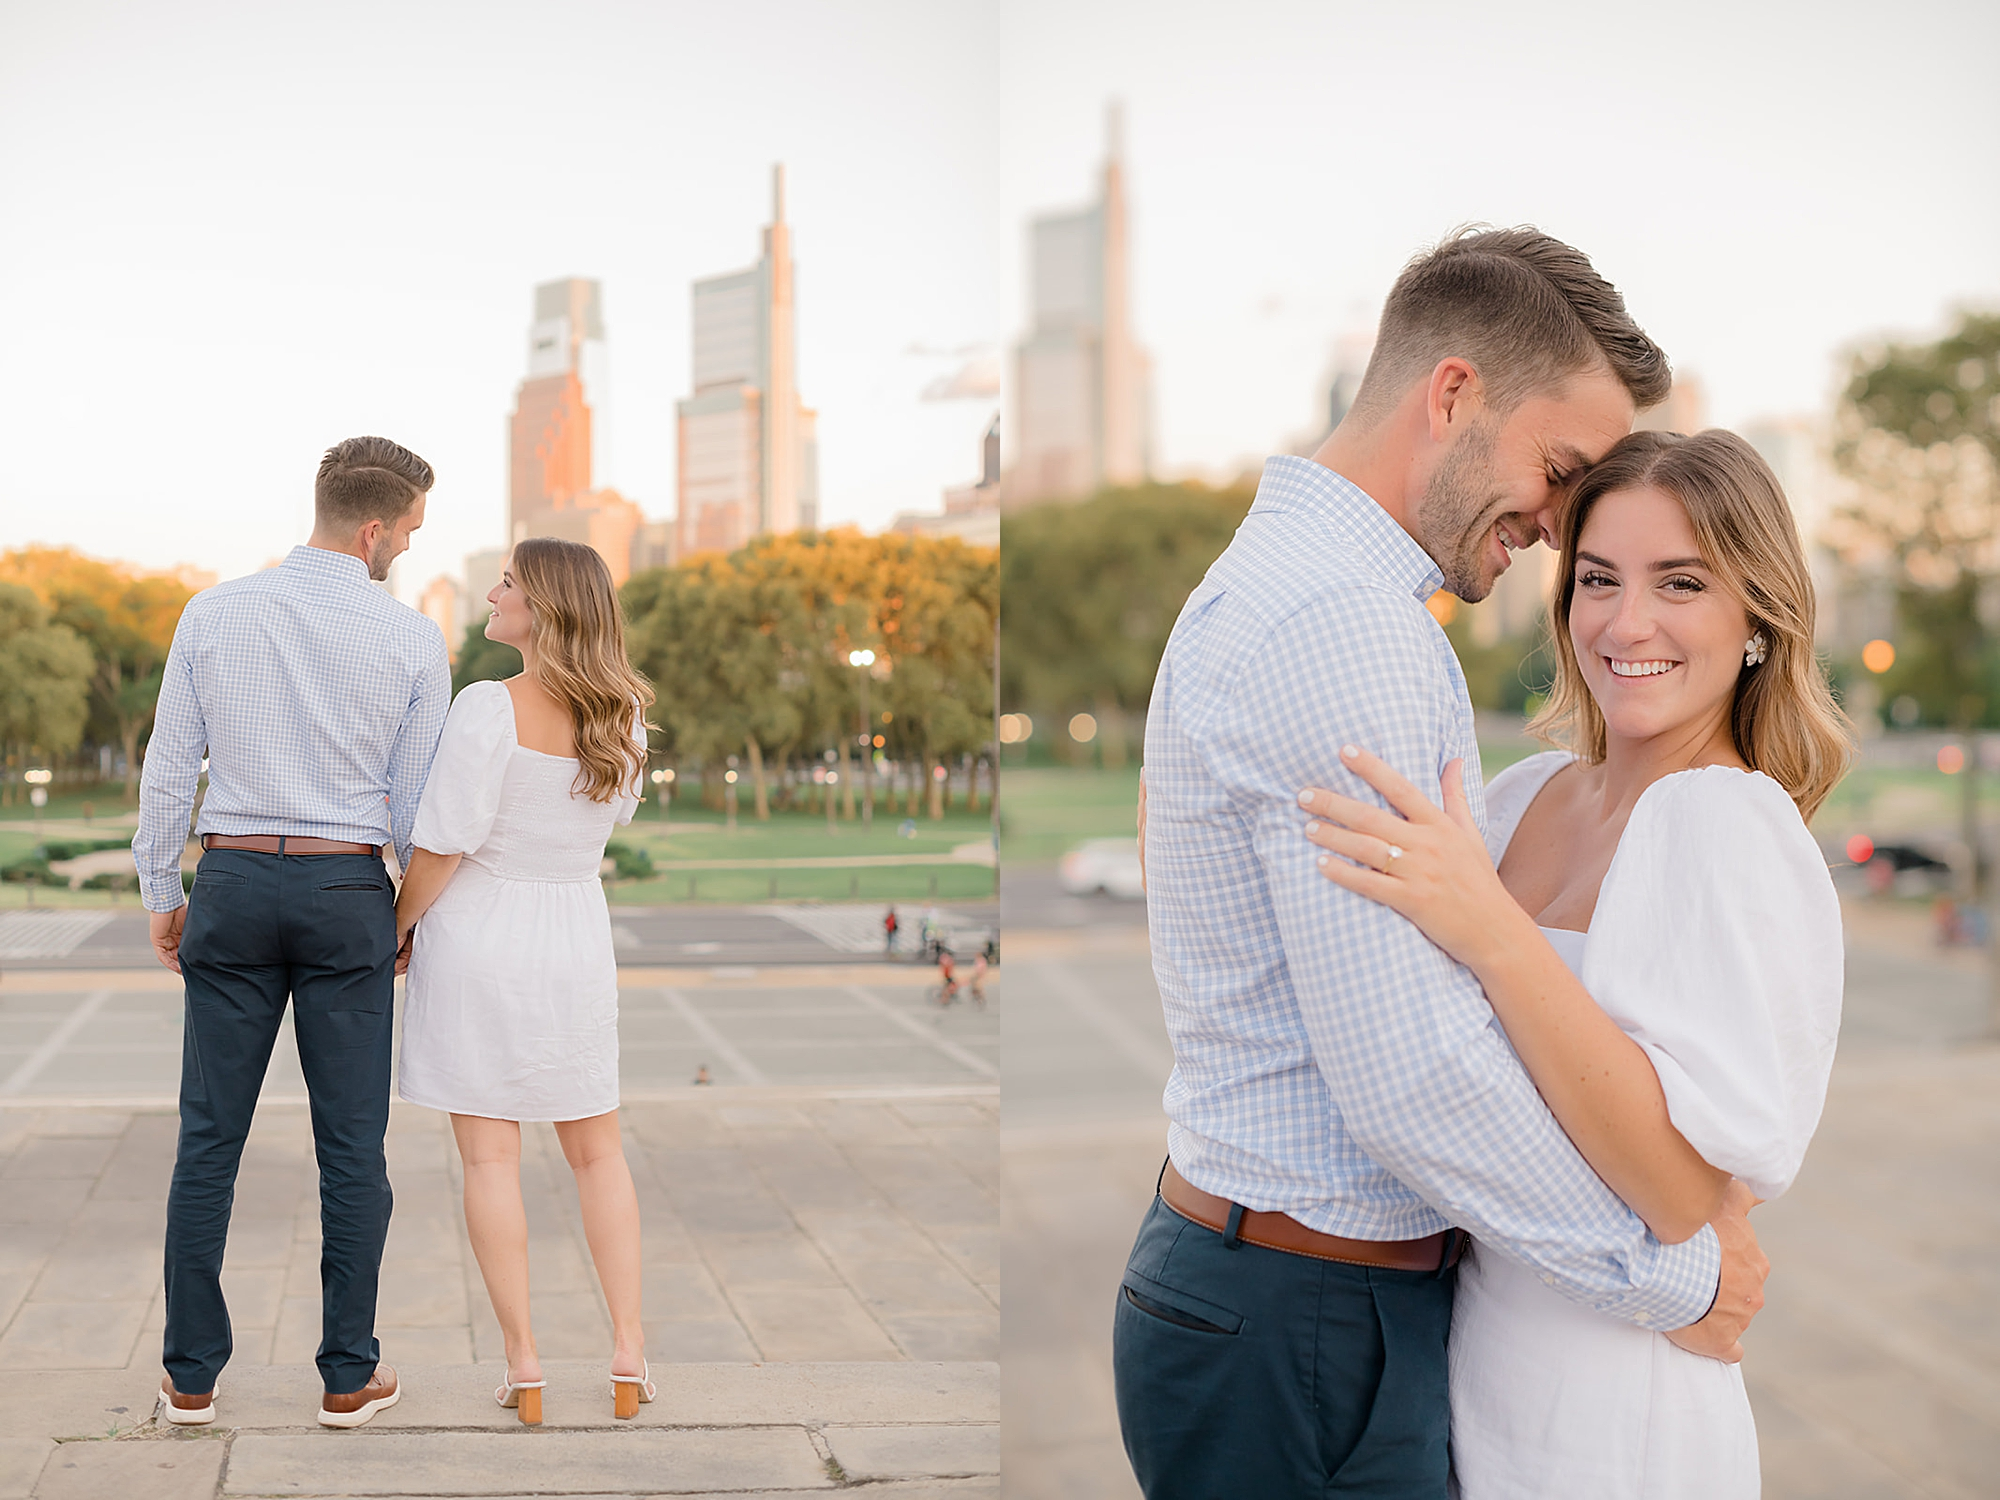 Philadelphia PA Engagement Photography by Magdalena Studios 0012